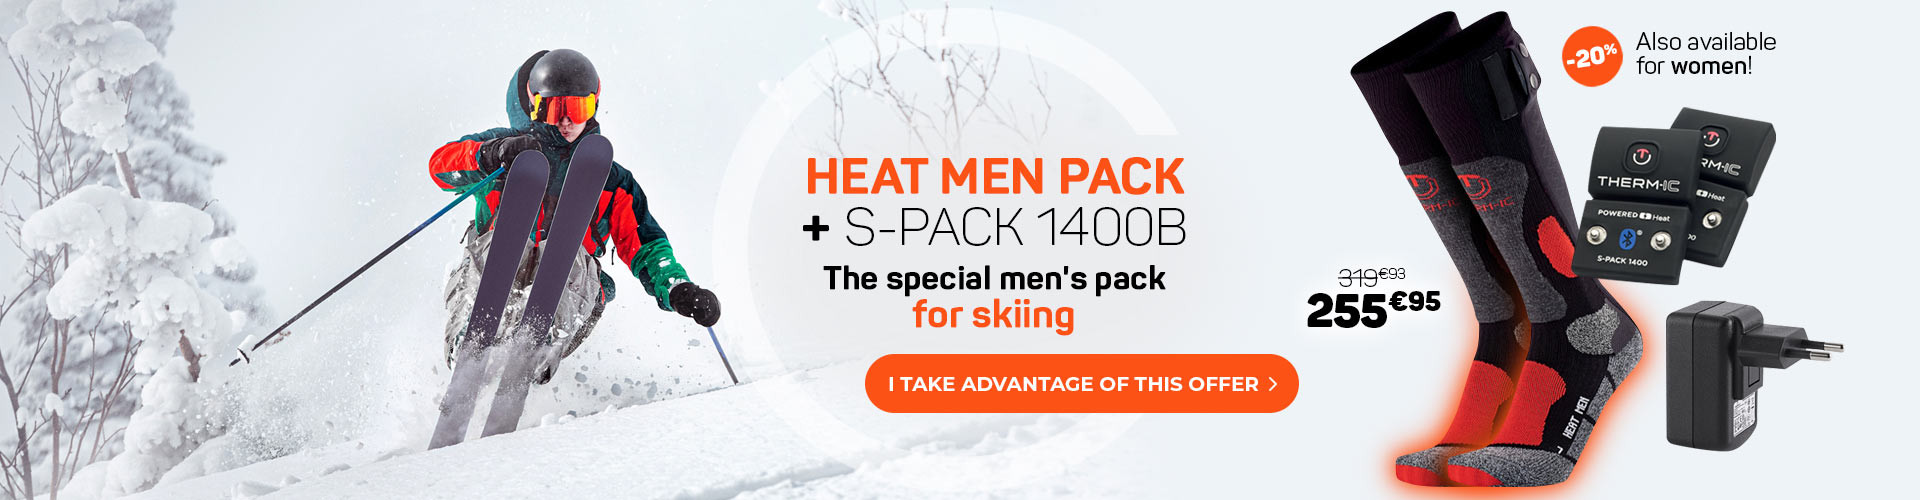 Enjoy 20% off on the Heat men pack! Limited offer!